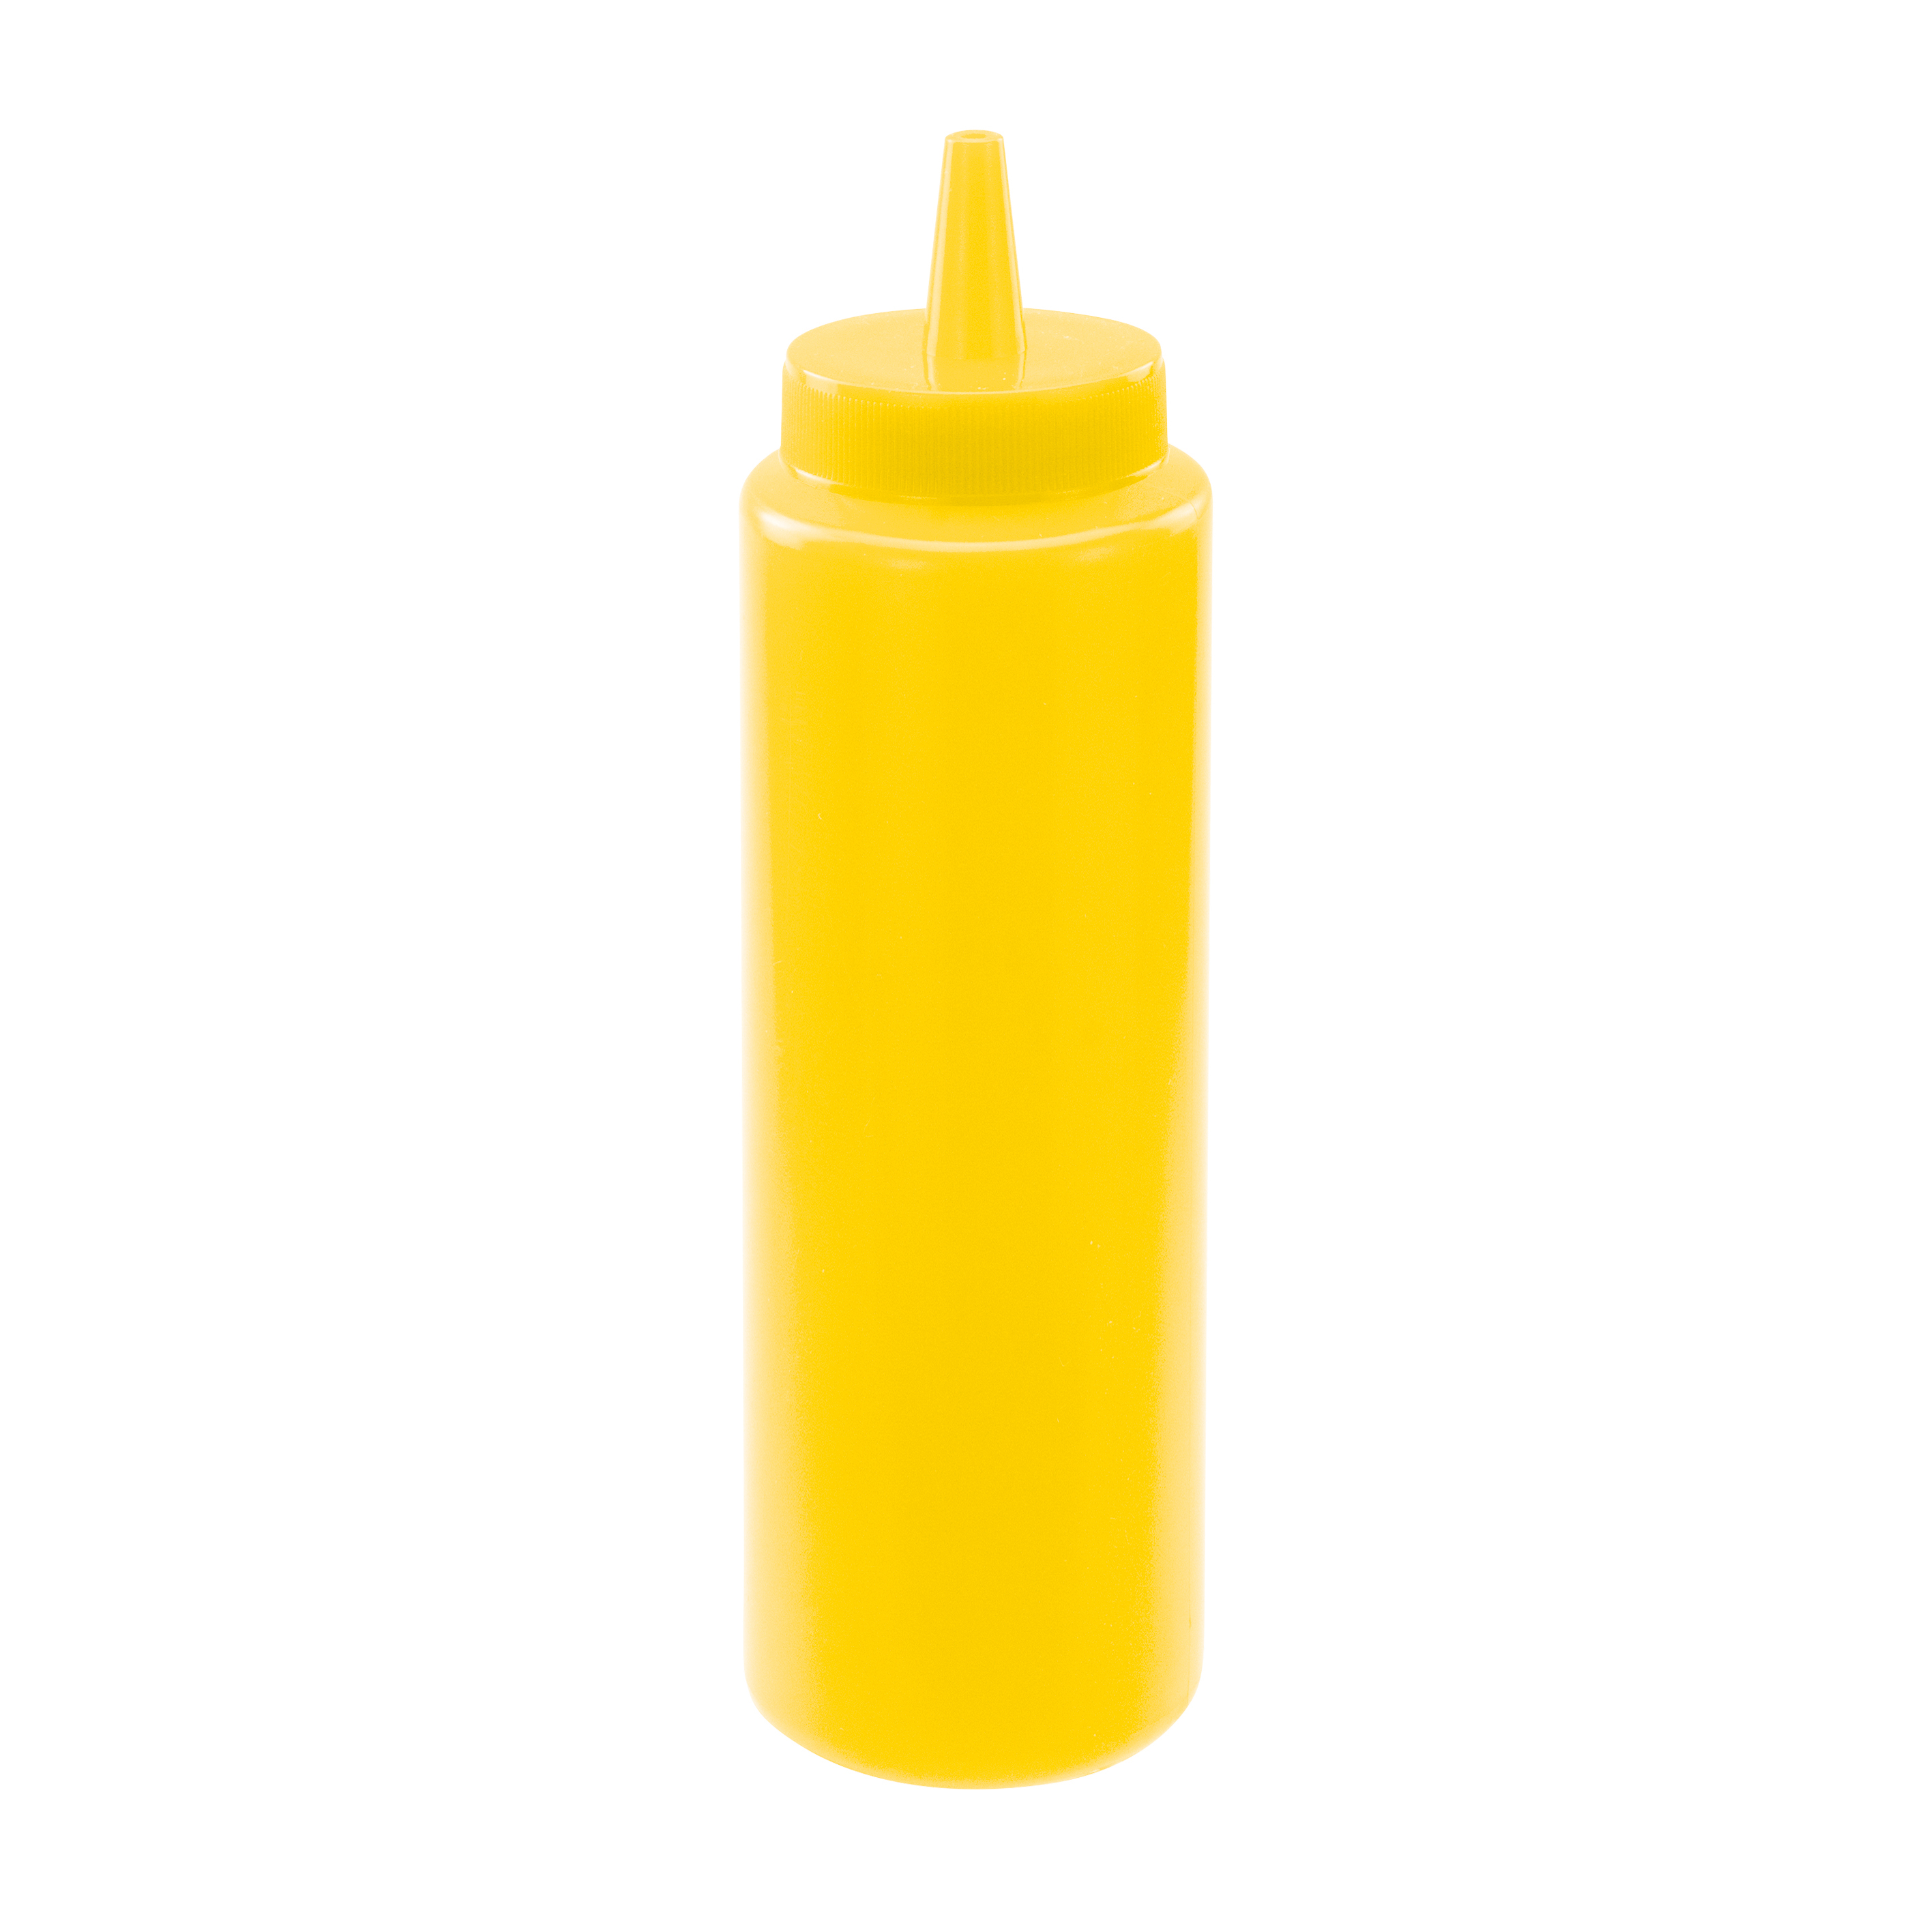 Winco PSB-08Y squeeze bottle